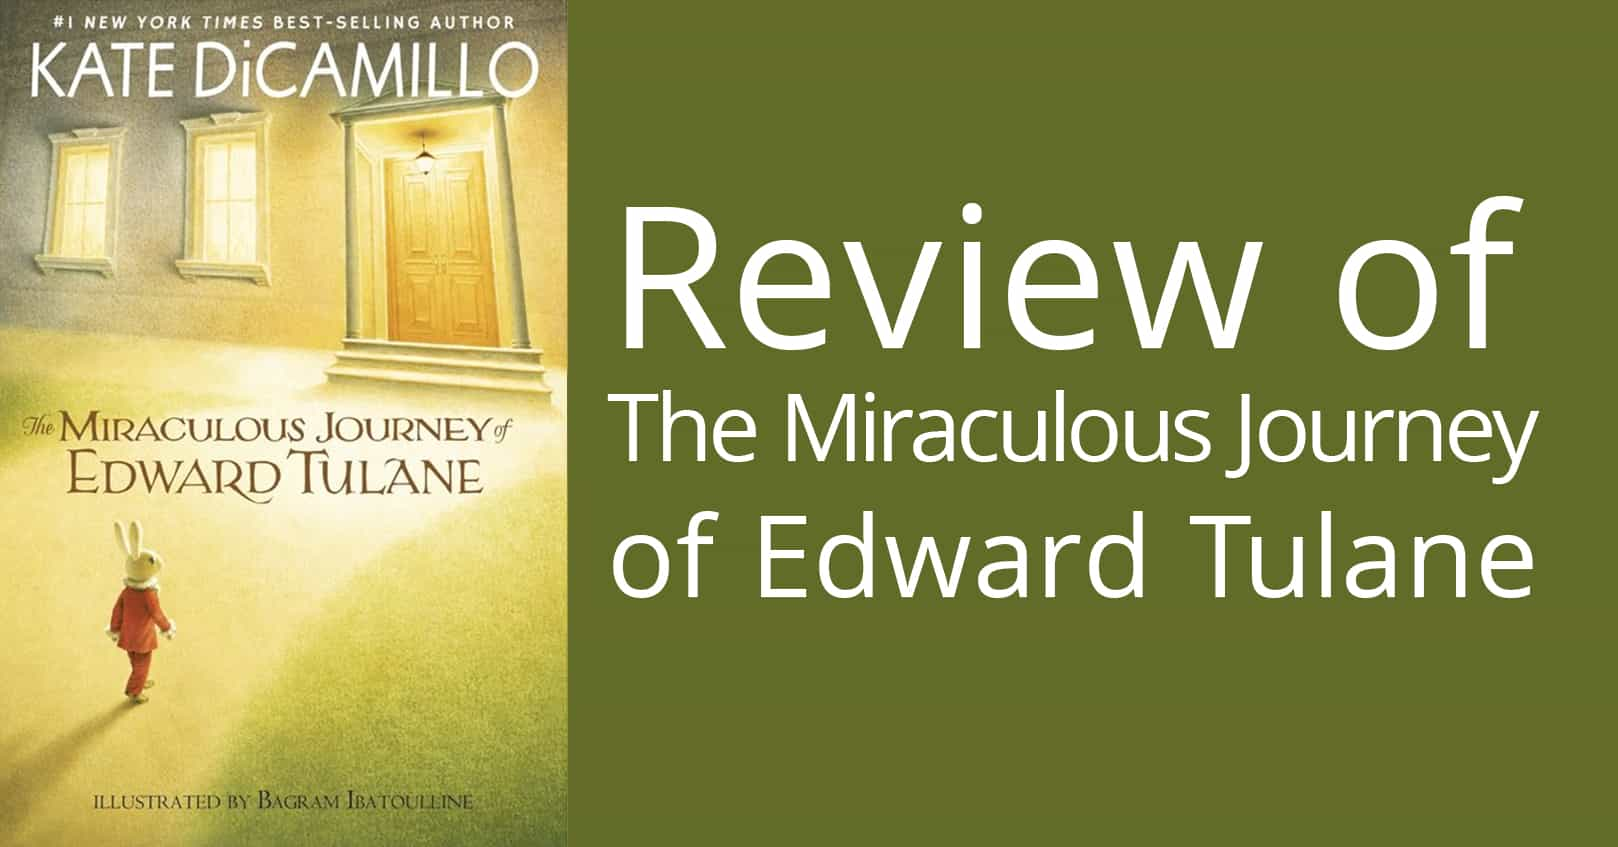 Review of The Miraculous Journey of Edward Tulane